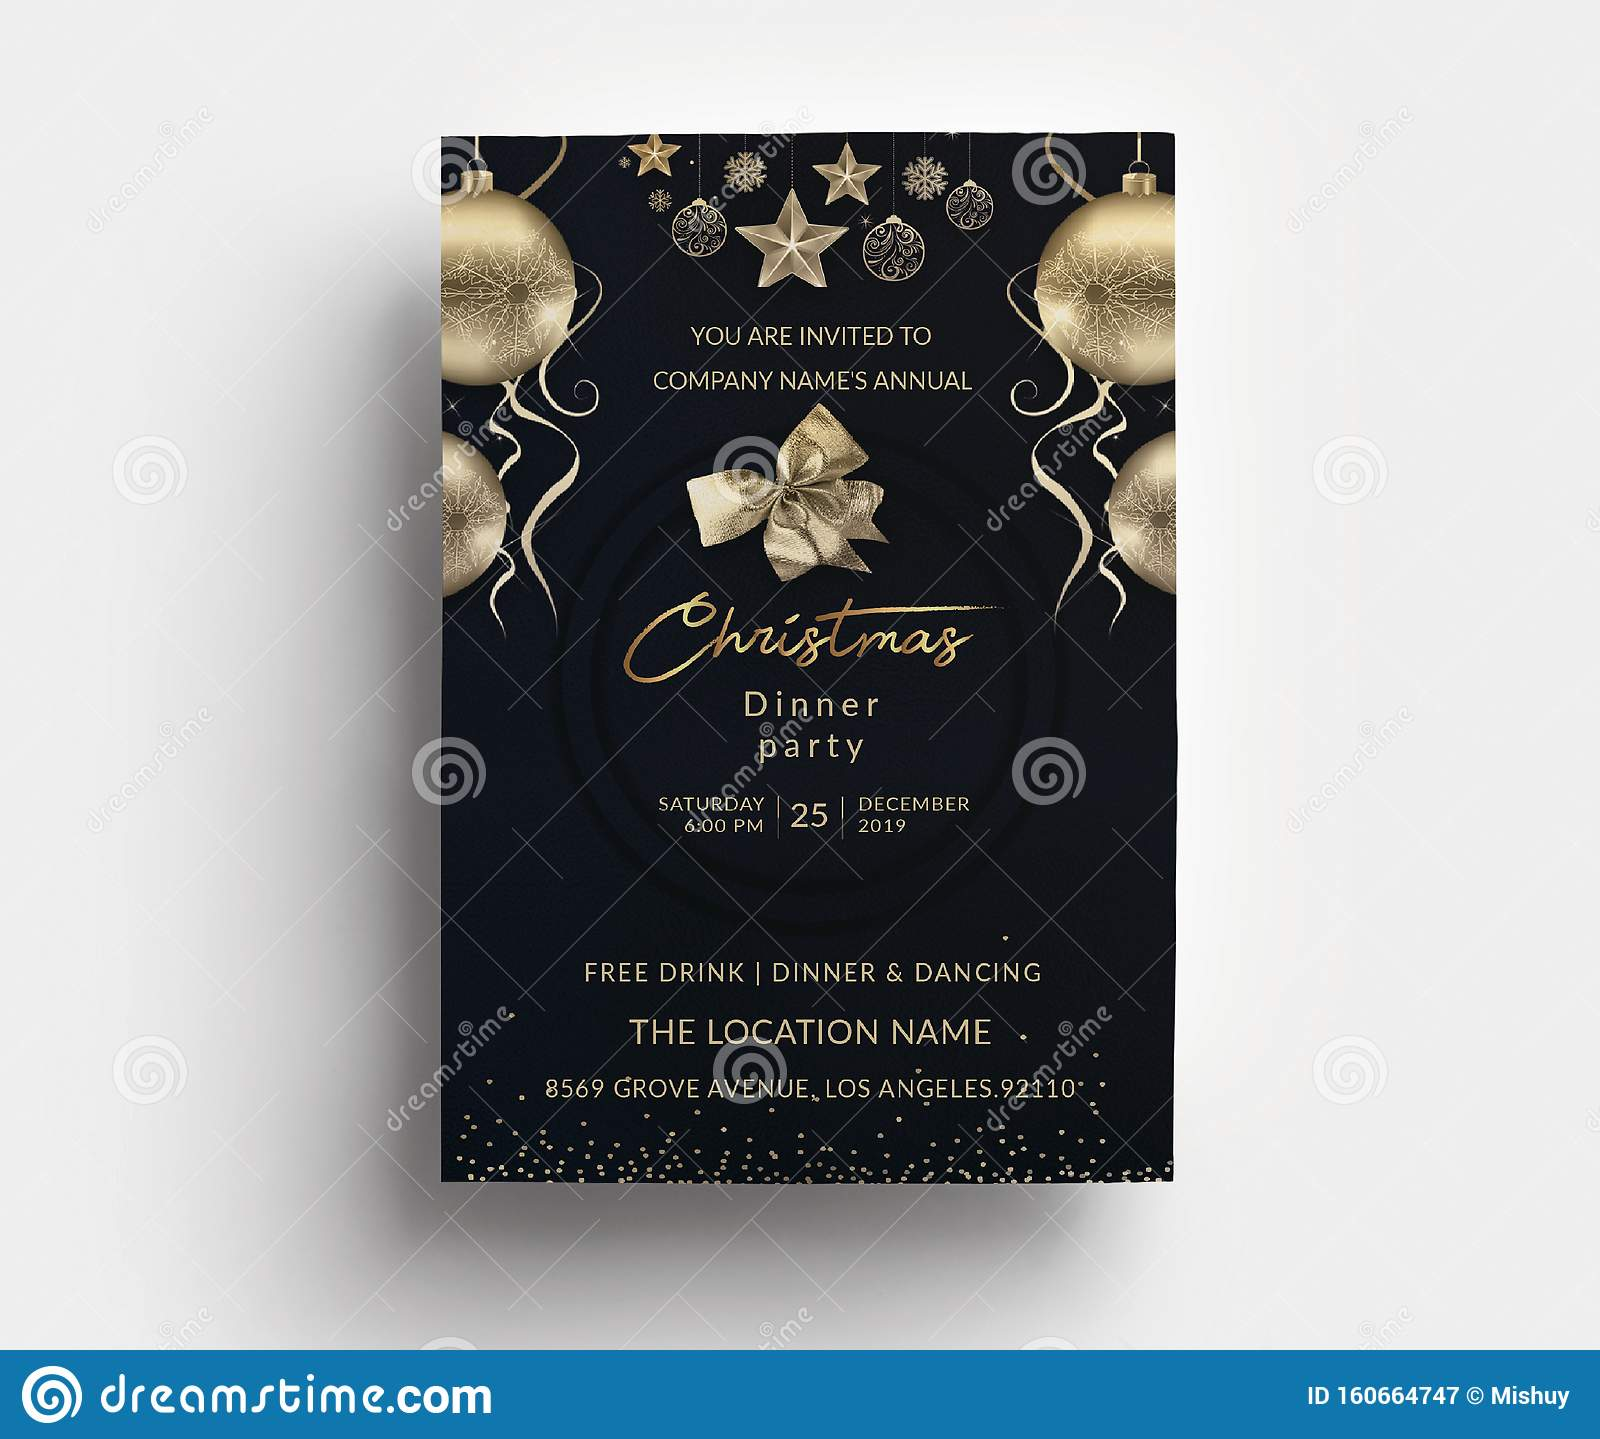 Christmas Dinner Party Invitation Card Template Stock Vector - Illustration  of christmas, merry: 160664747